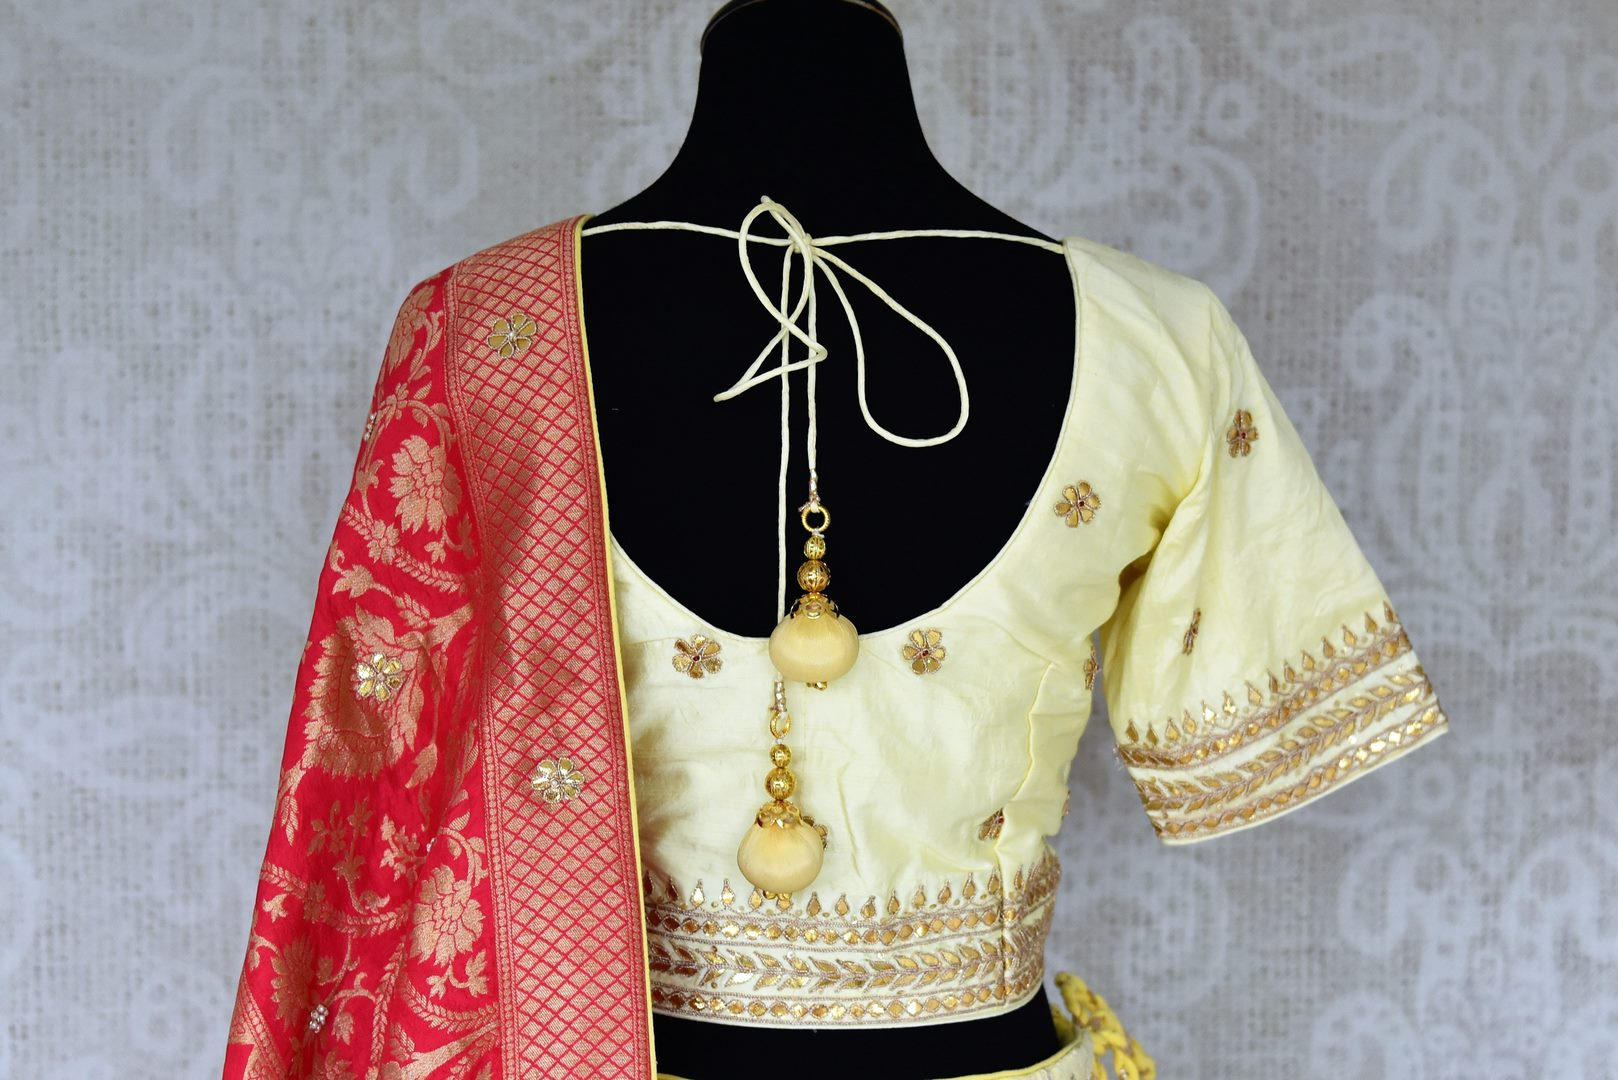 Shop lemon yellow Lucknowi lehenga online in USA with pink dupatta. Make fashionable choices with latest Indian designer clothing from Pure Elegance Indian fashion store in USA. Shop Indian salwar suits, designer Anarkali suits and bridal lehengas for Indian brides in USA from our online store.-back